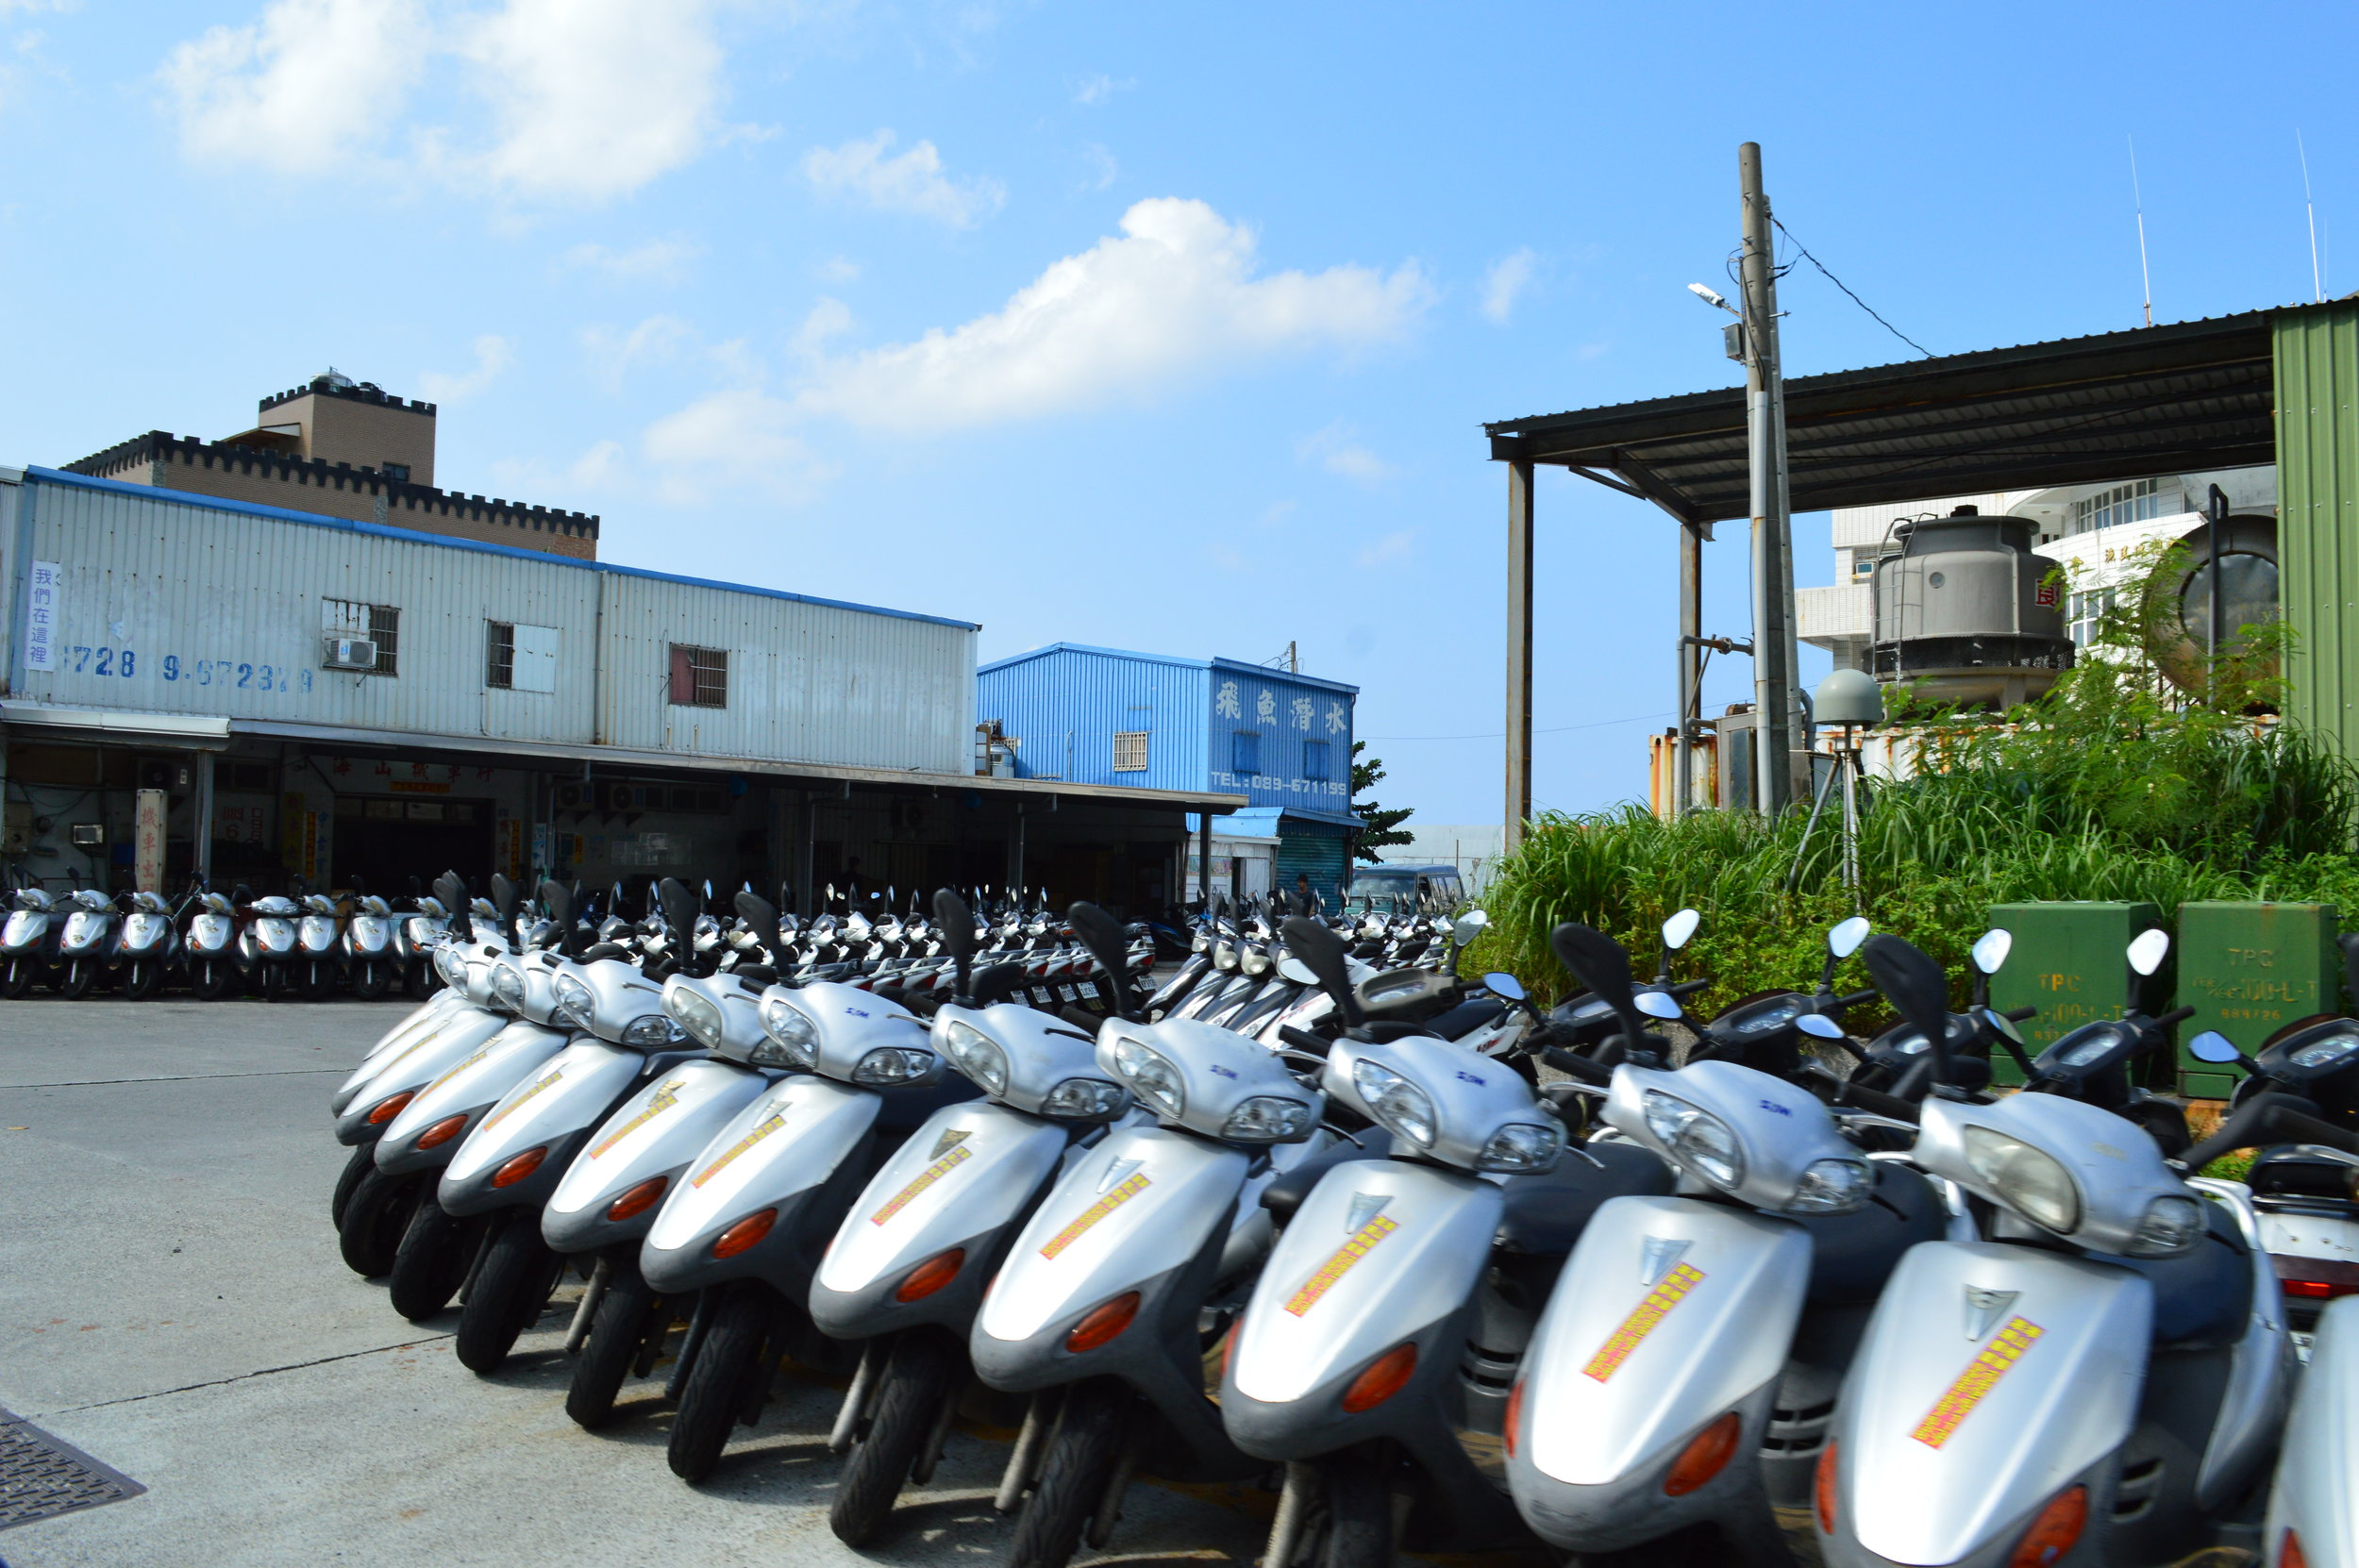 A sea of motorbikes. Green Island must be pretty popular in the summer!